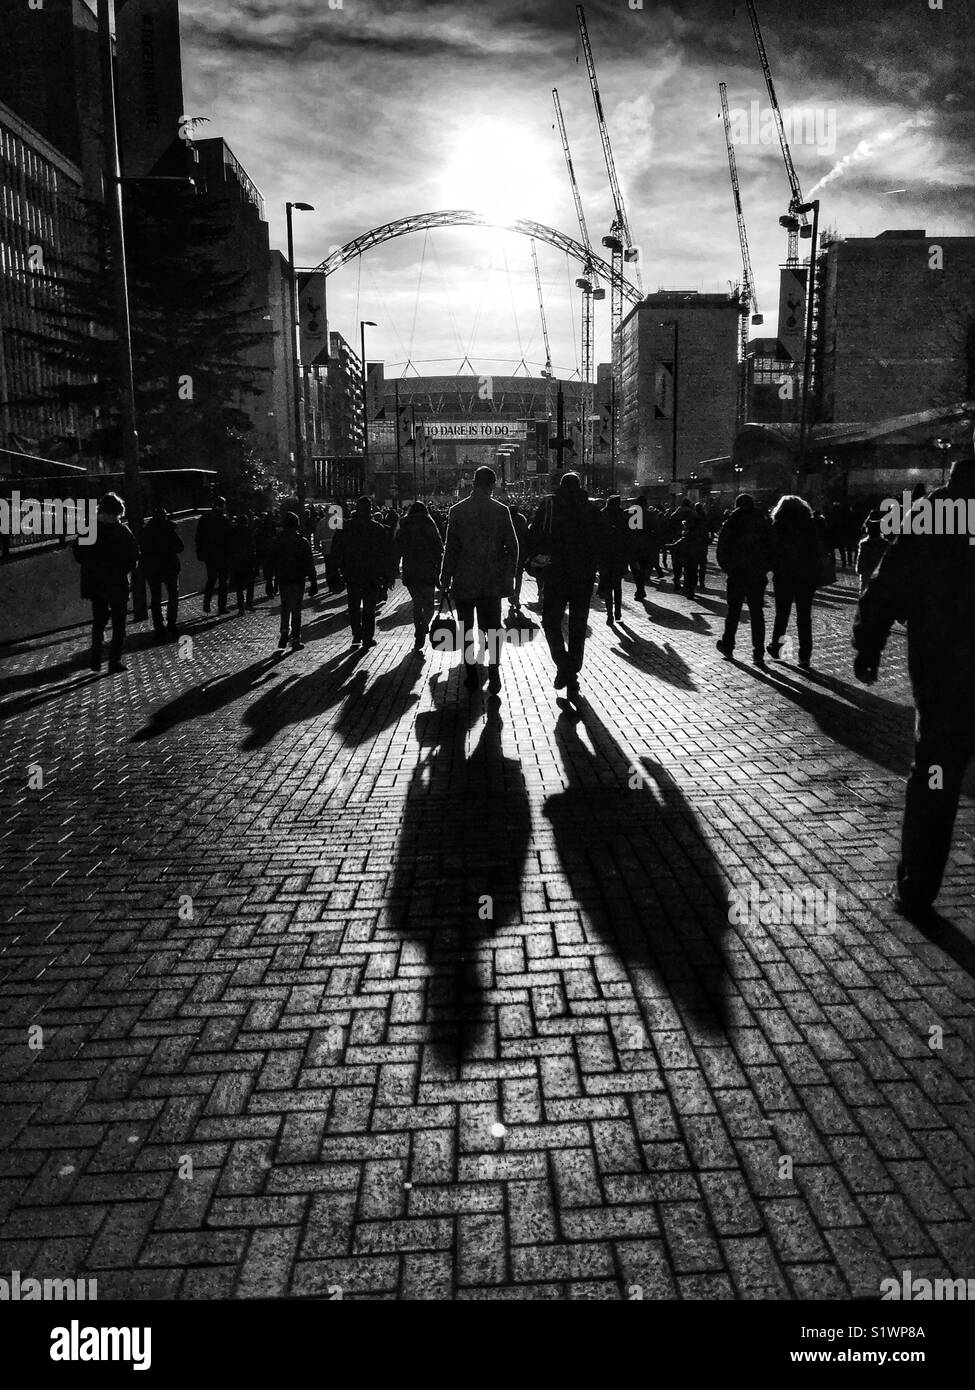 Football supporters walking into the sun towards Wembley Stadium. - Stock Image